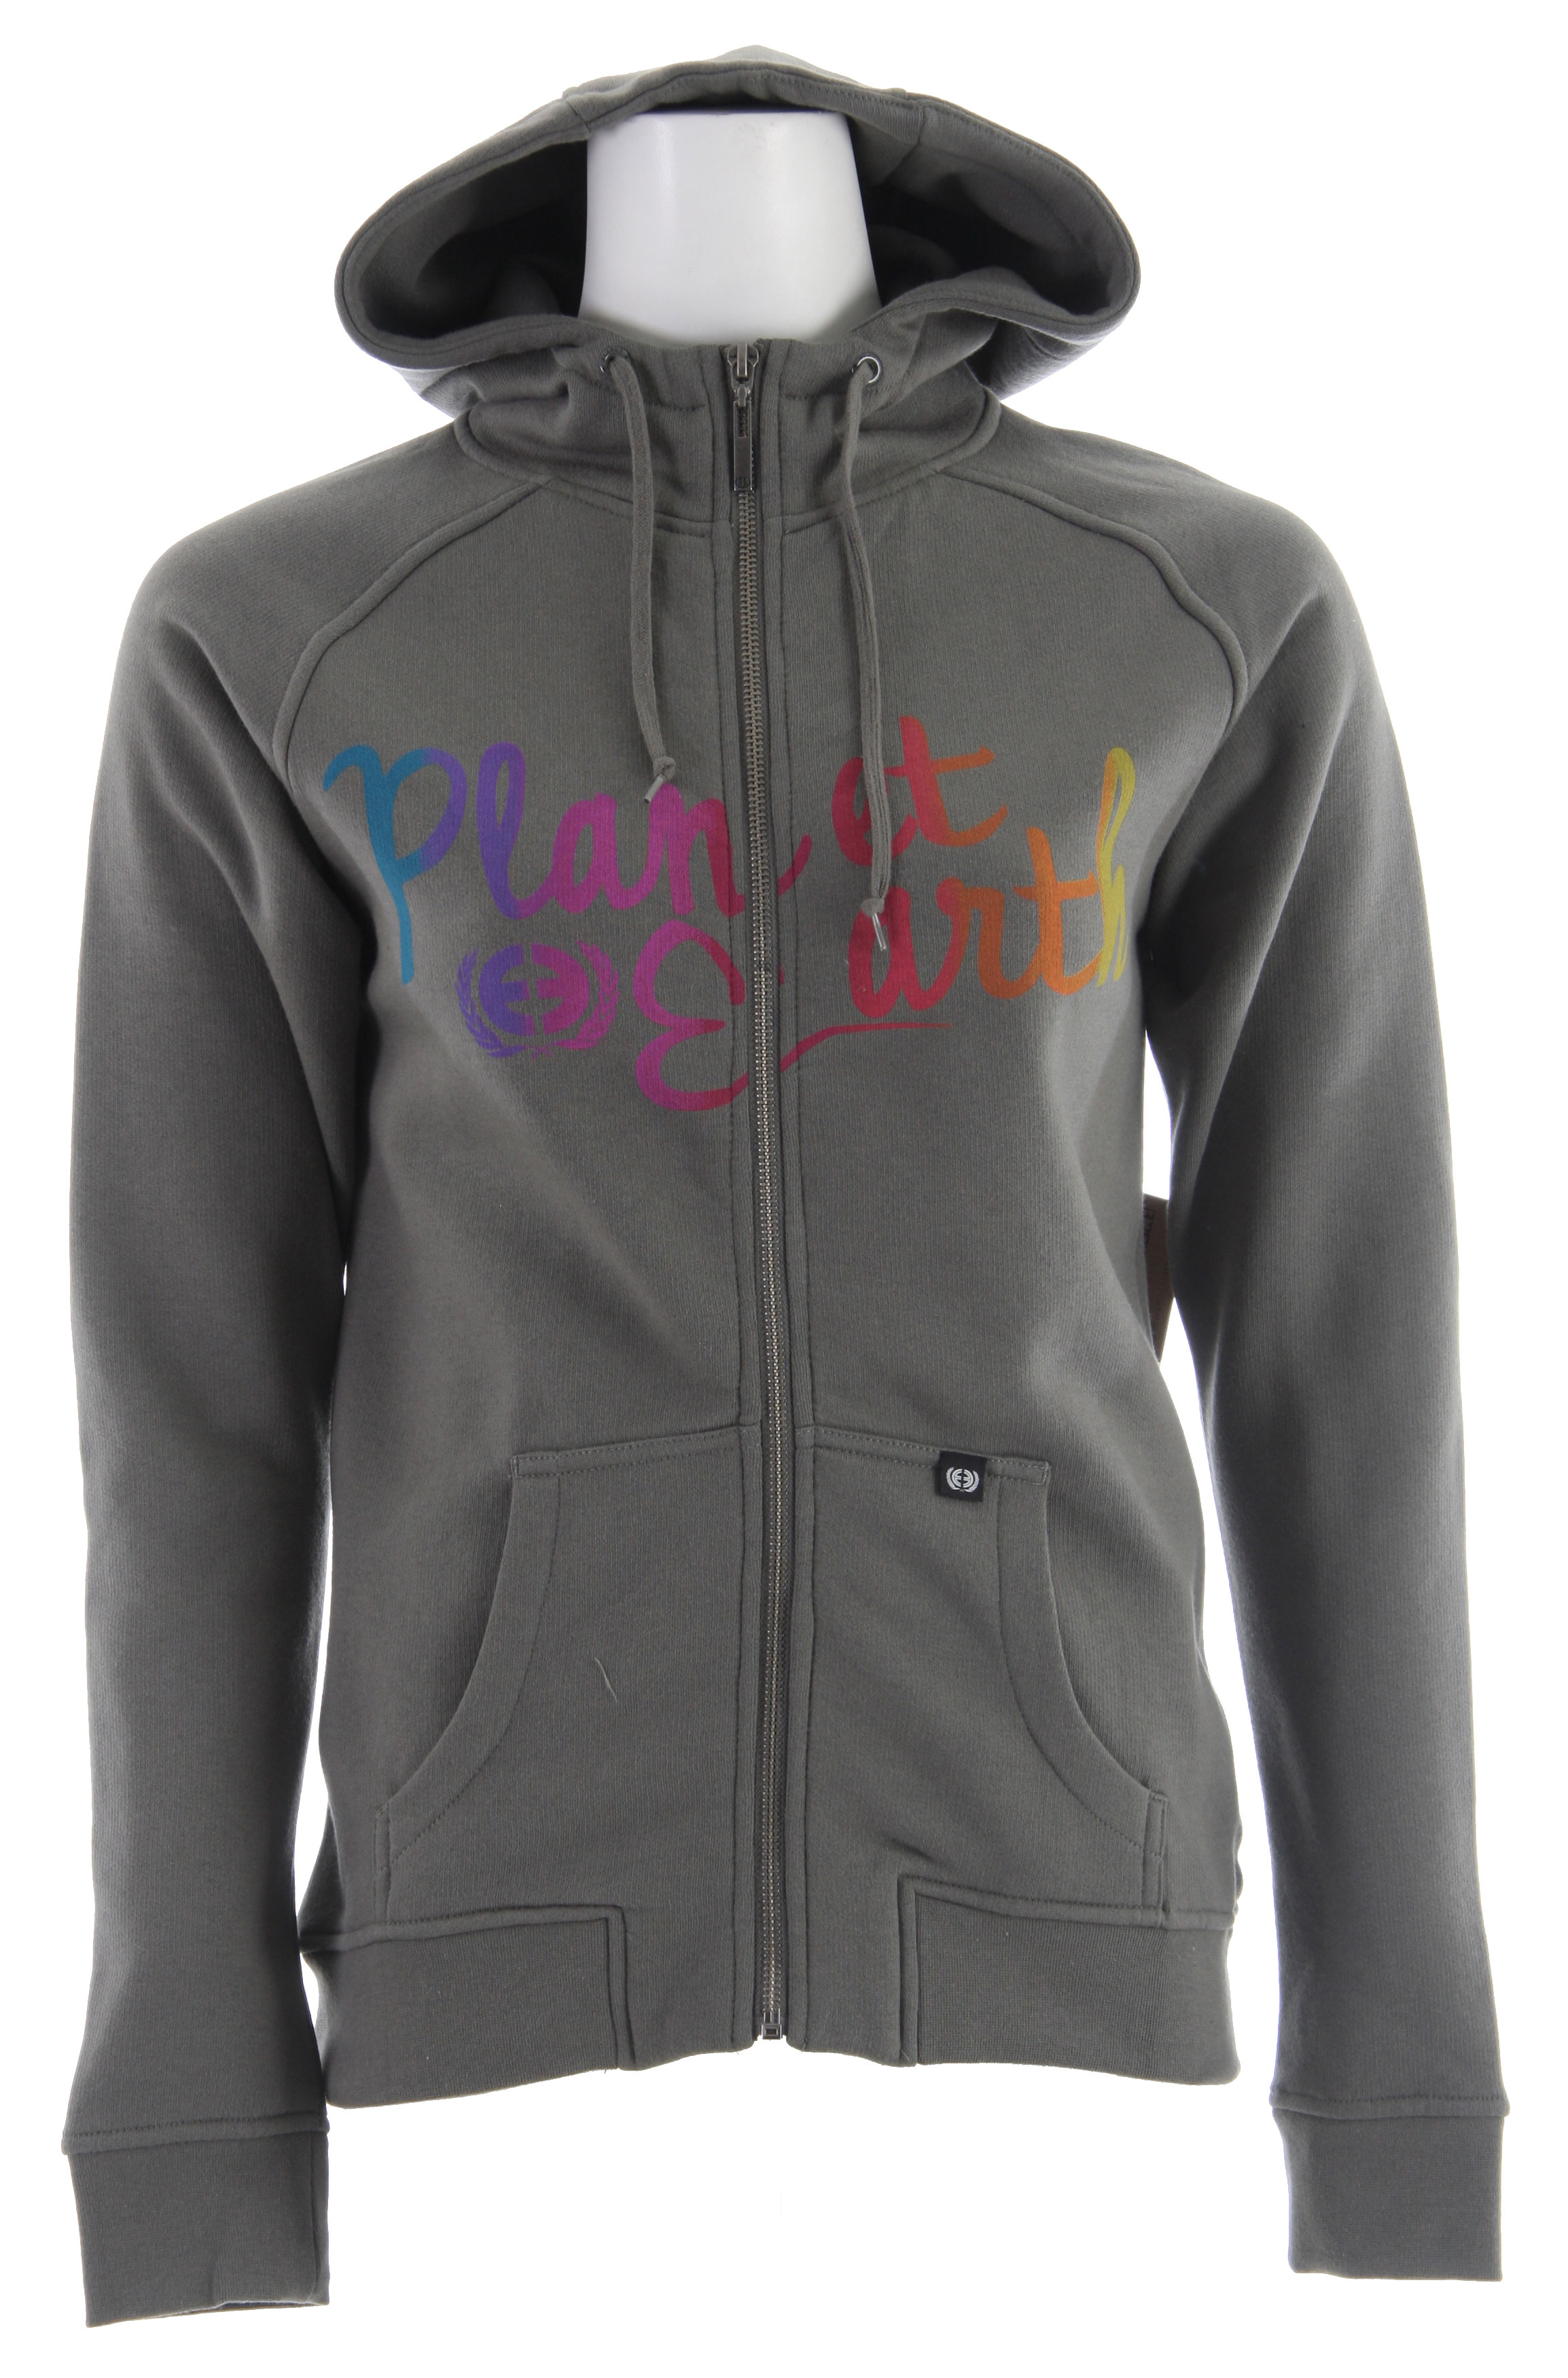 Key Features of the Planet Earth Prism Hoodie:Modern sweatshirt fleece hoodie with Planet Earth graphic print 60% Organic Cotton Yarn blended with 40% Recyclable Virgin Poly Yarn. All embellished with Eco-Friendly inks and embellishments. - $33.95